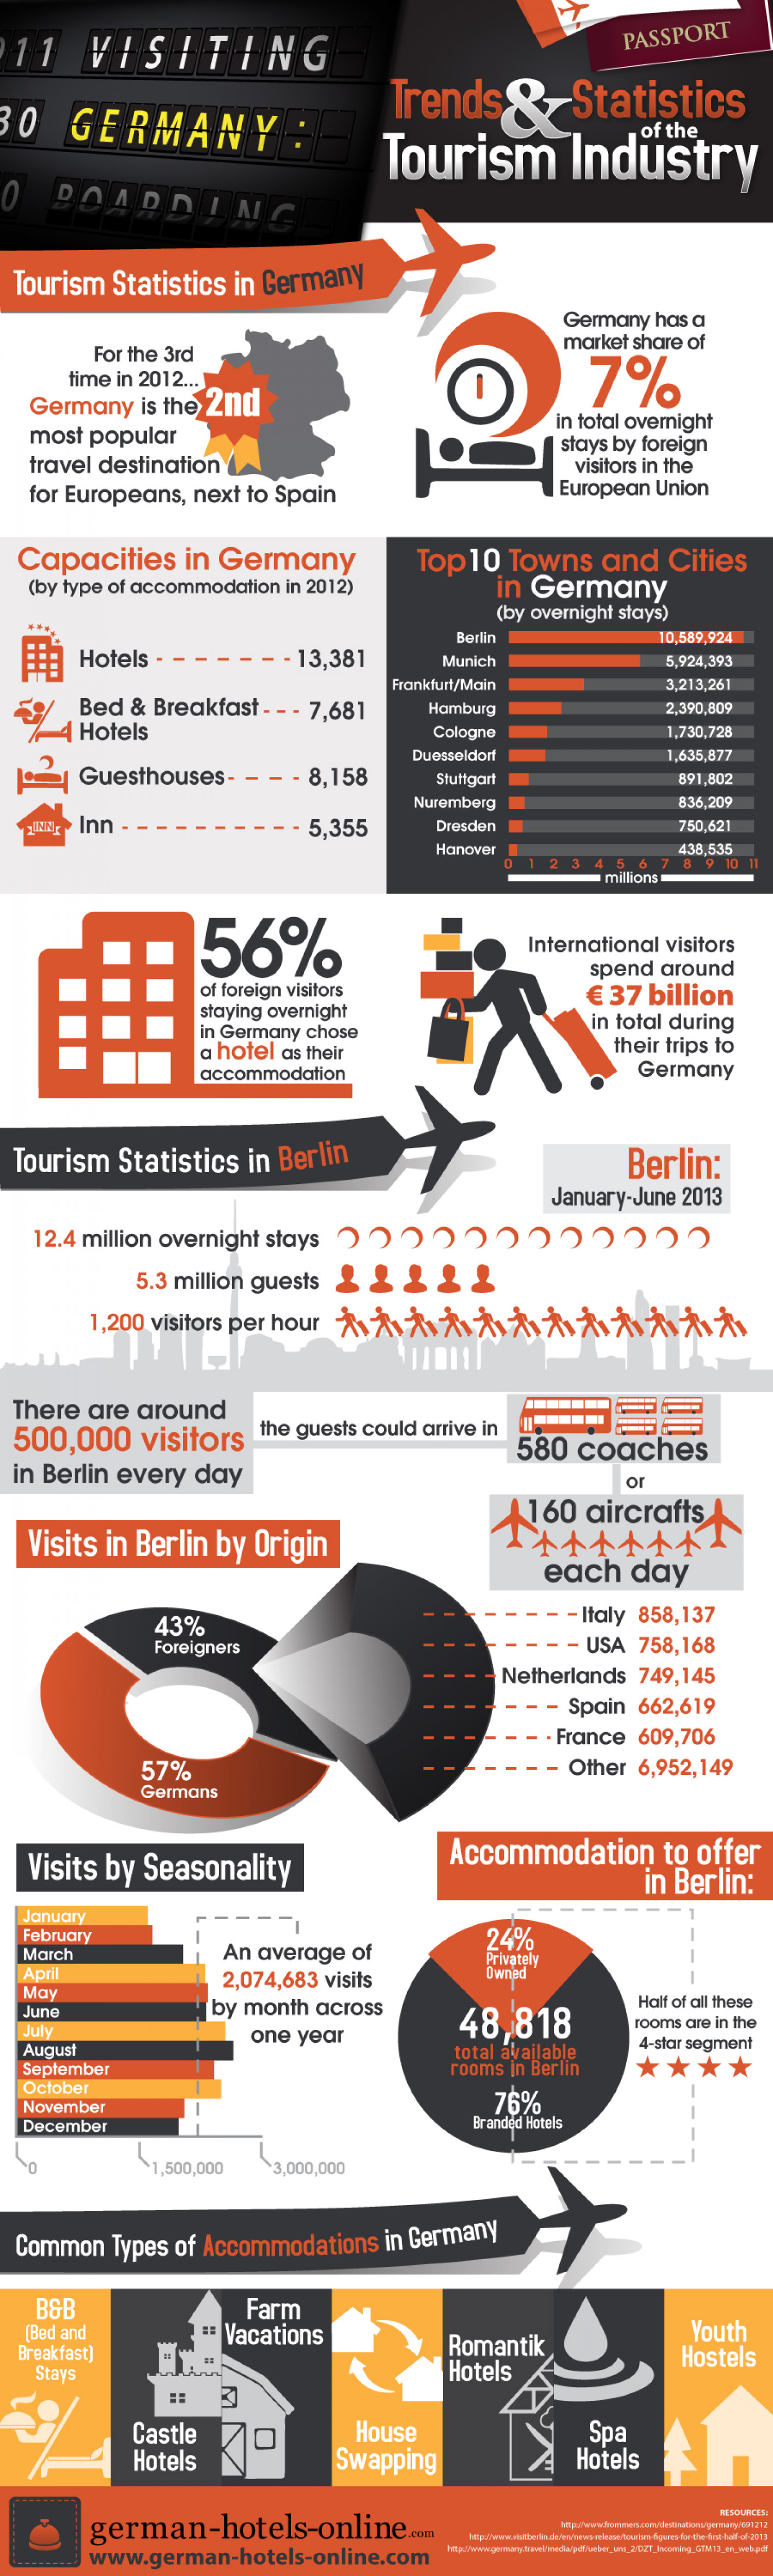 Visiting Germany: Trend and Statistics of the Tourism Industry Infographic